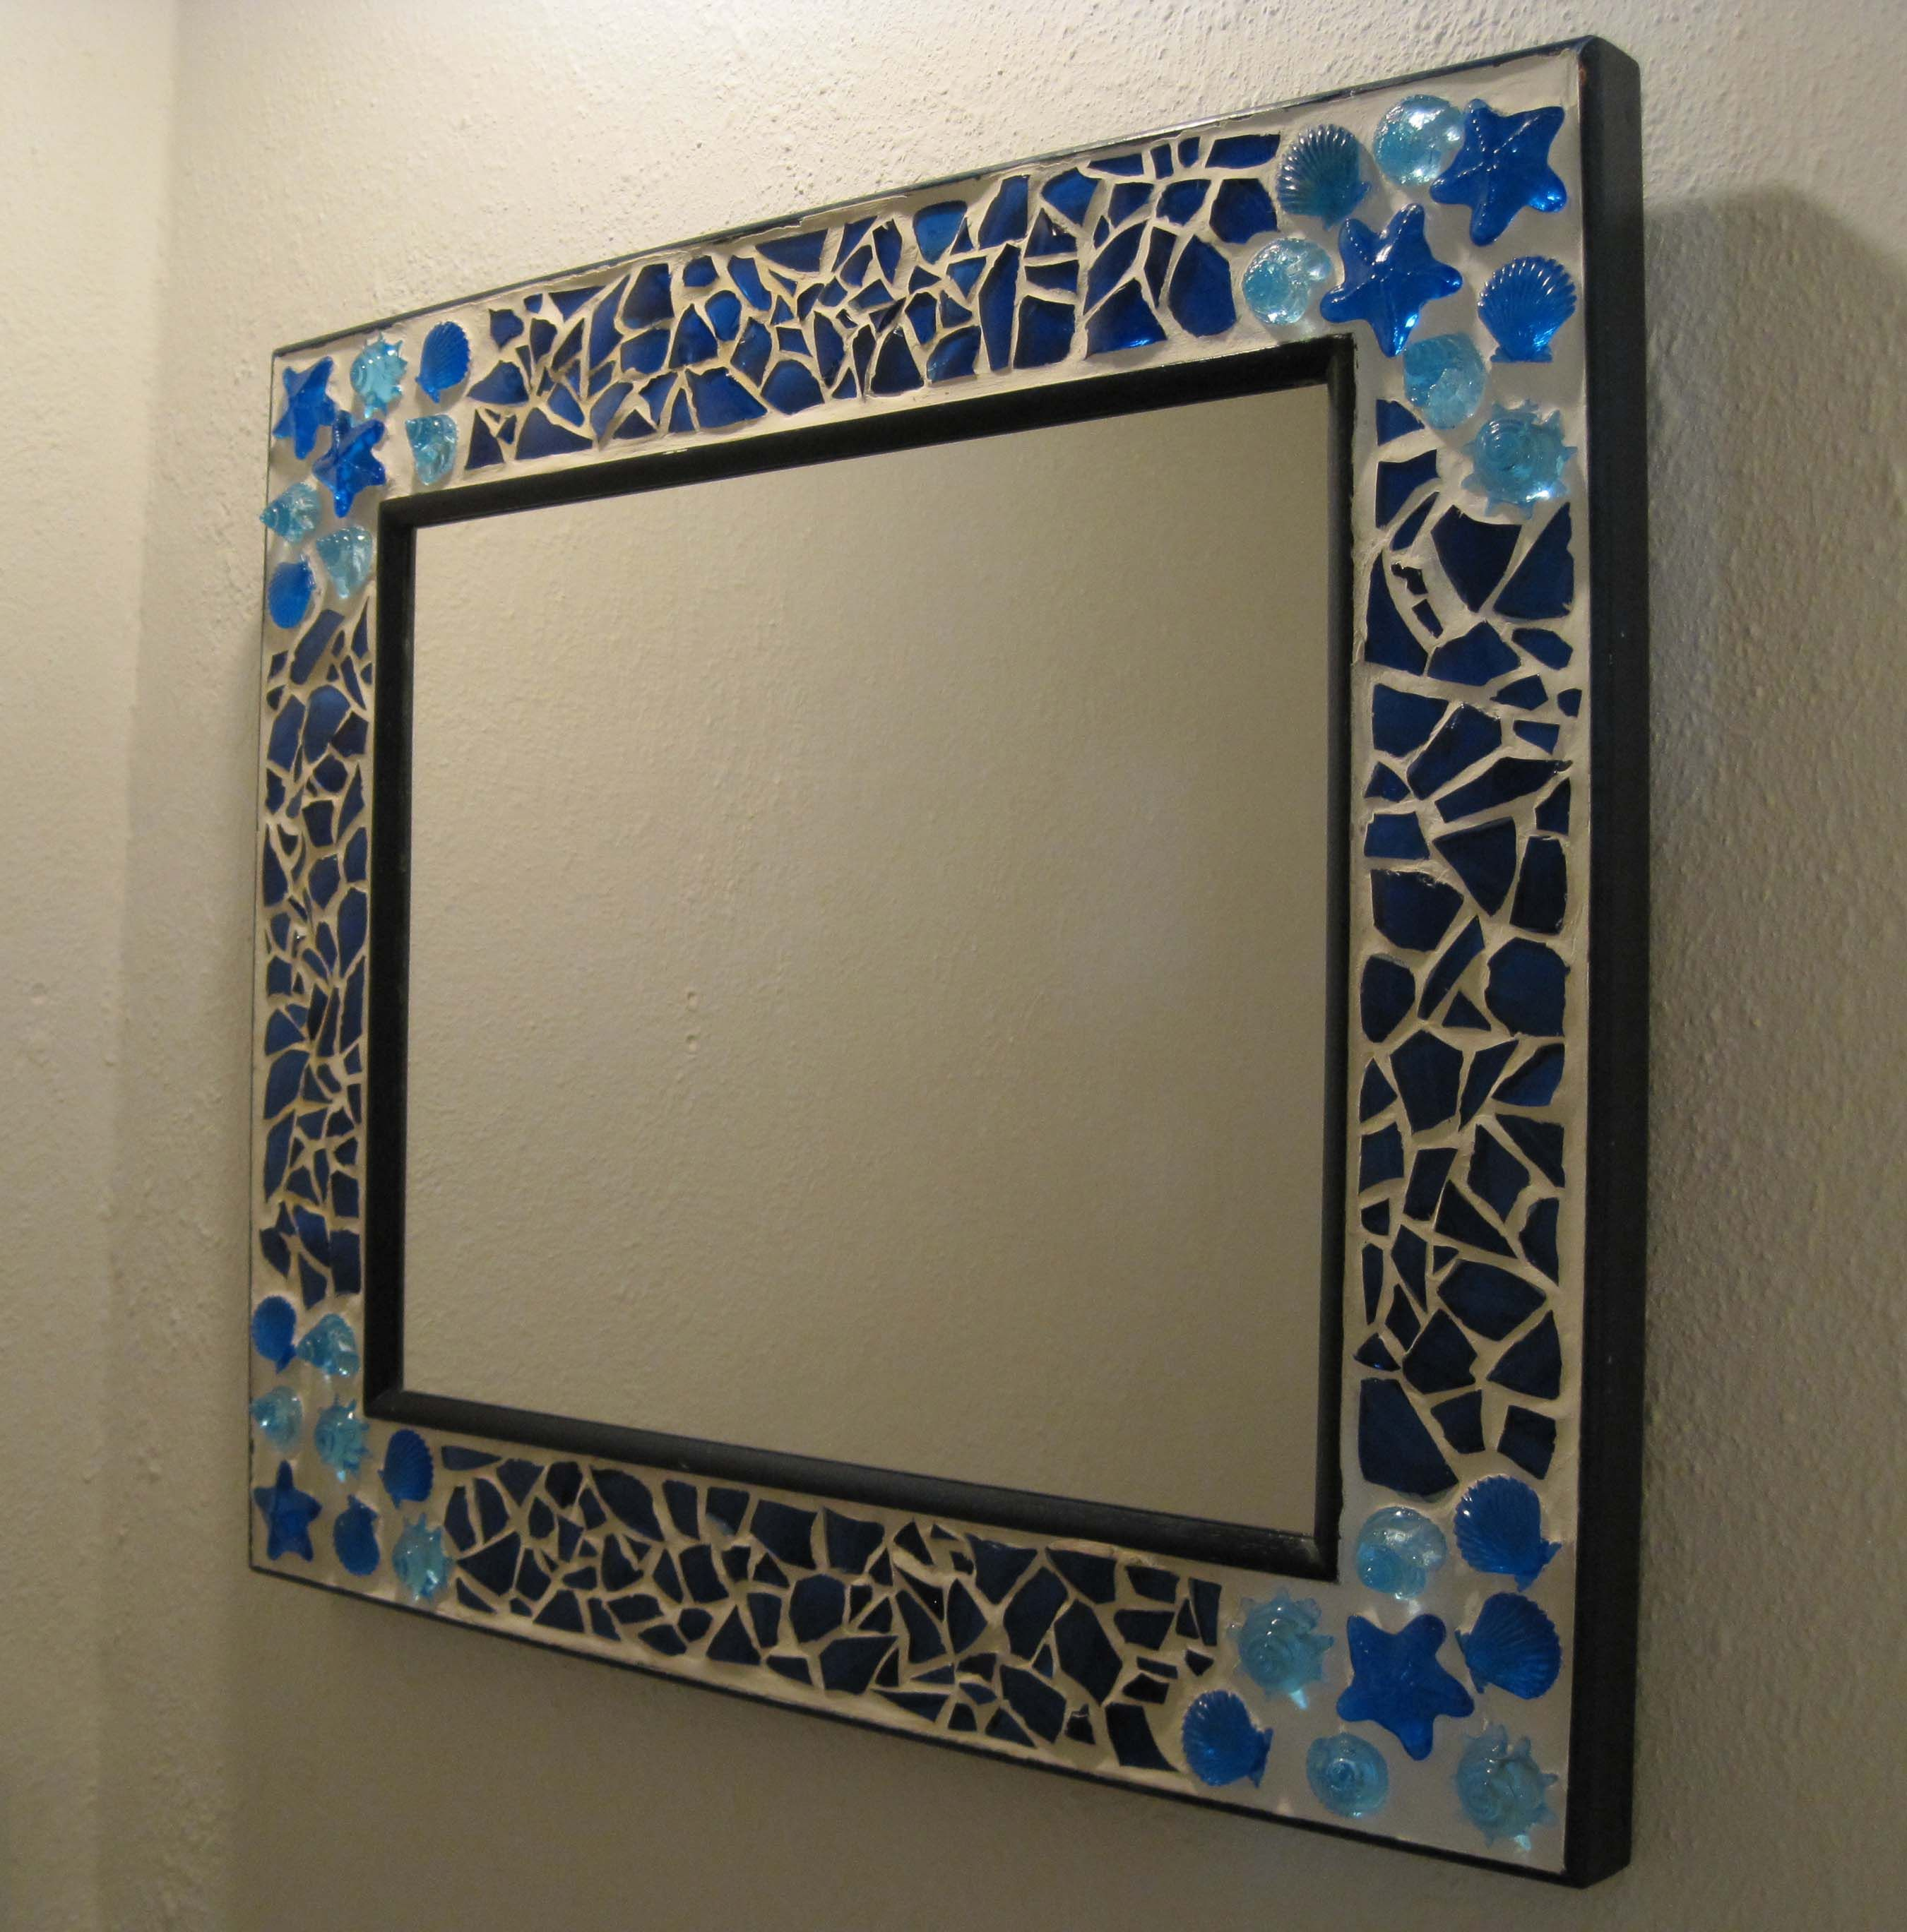 Spiegel Mosaik Mosaic Mirror And Clock | Mosaic Ideas And Patterns